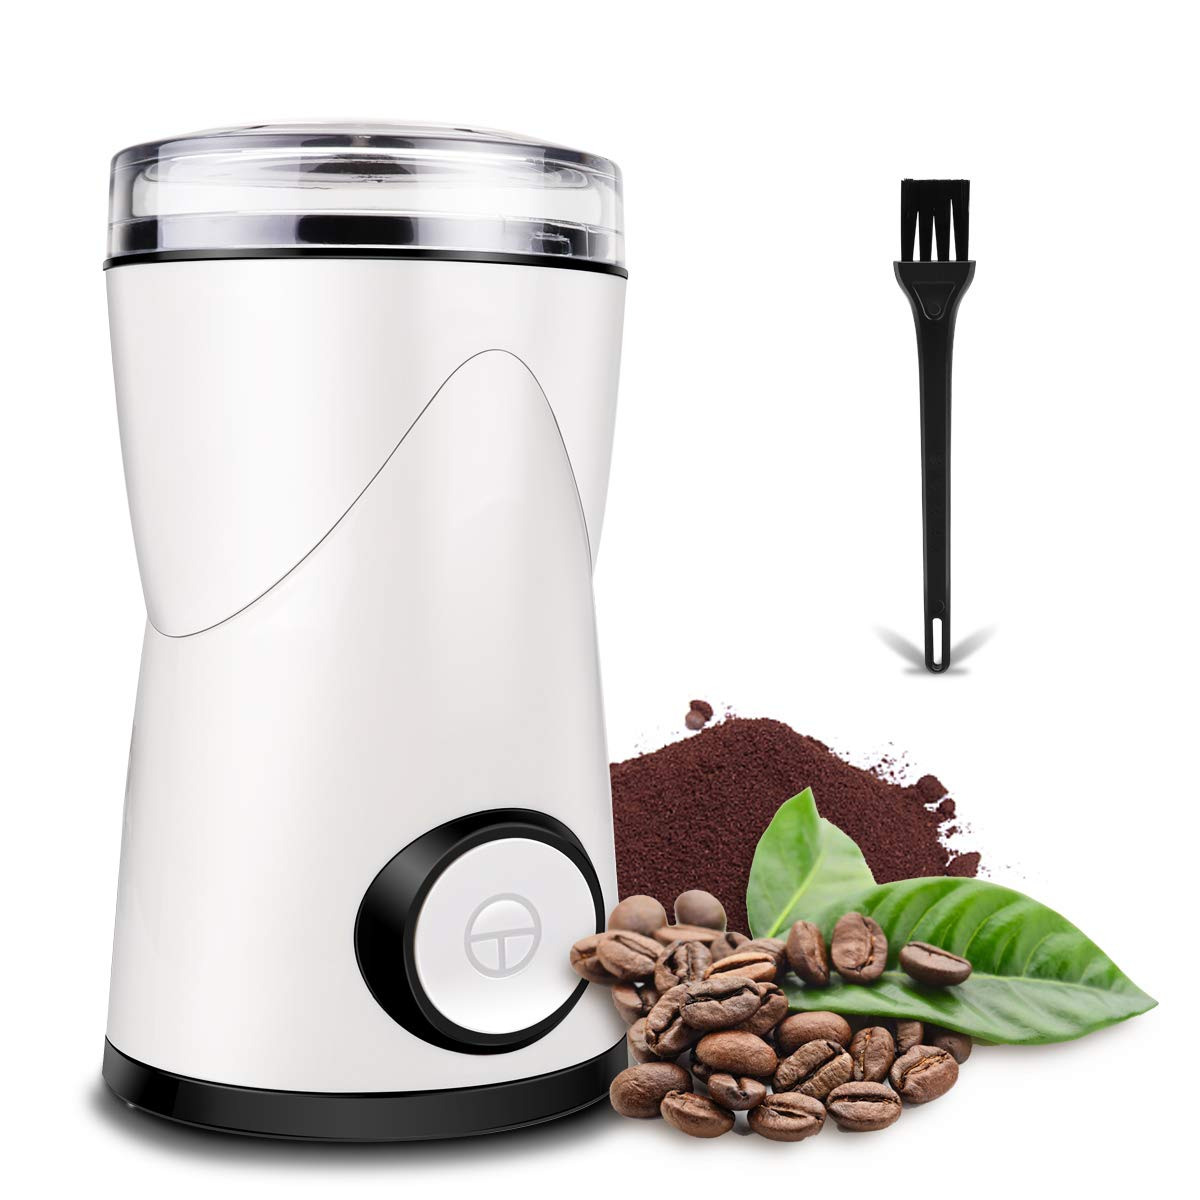 morpilot Electric Coffee Grinder, 150w Stainless Steel Blades Grinder,Grinding with Coffee Bean, Nut and Spice Grinder-70g Capacity